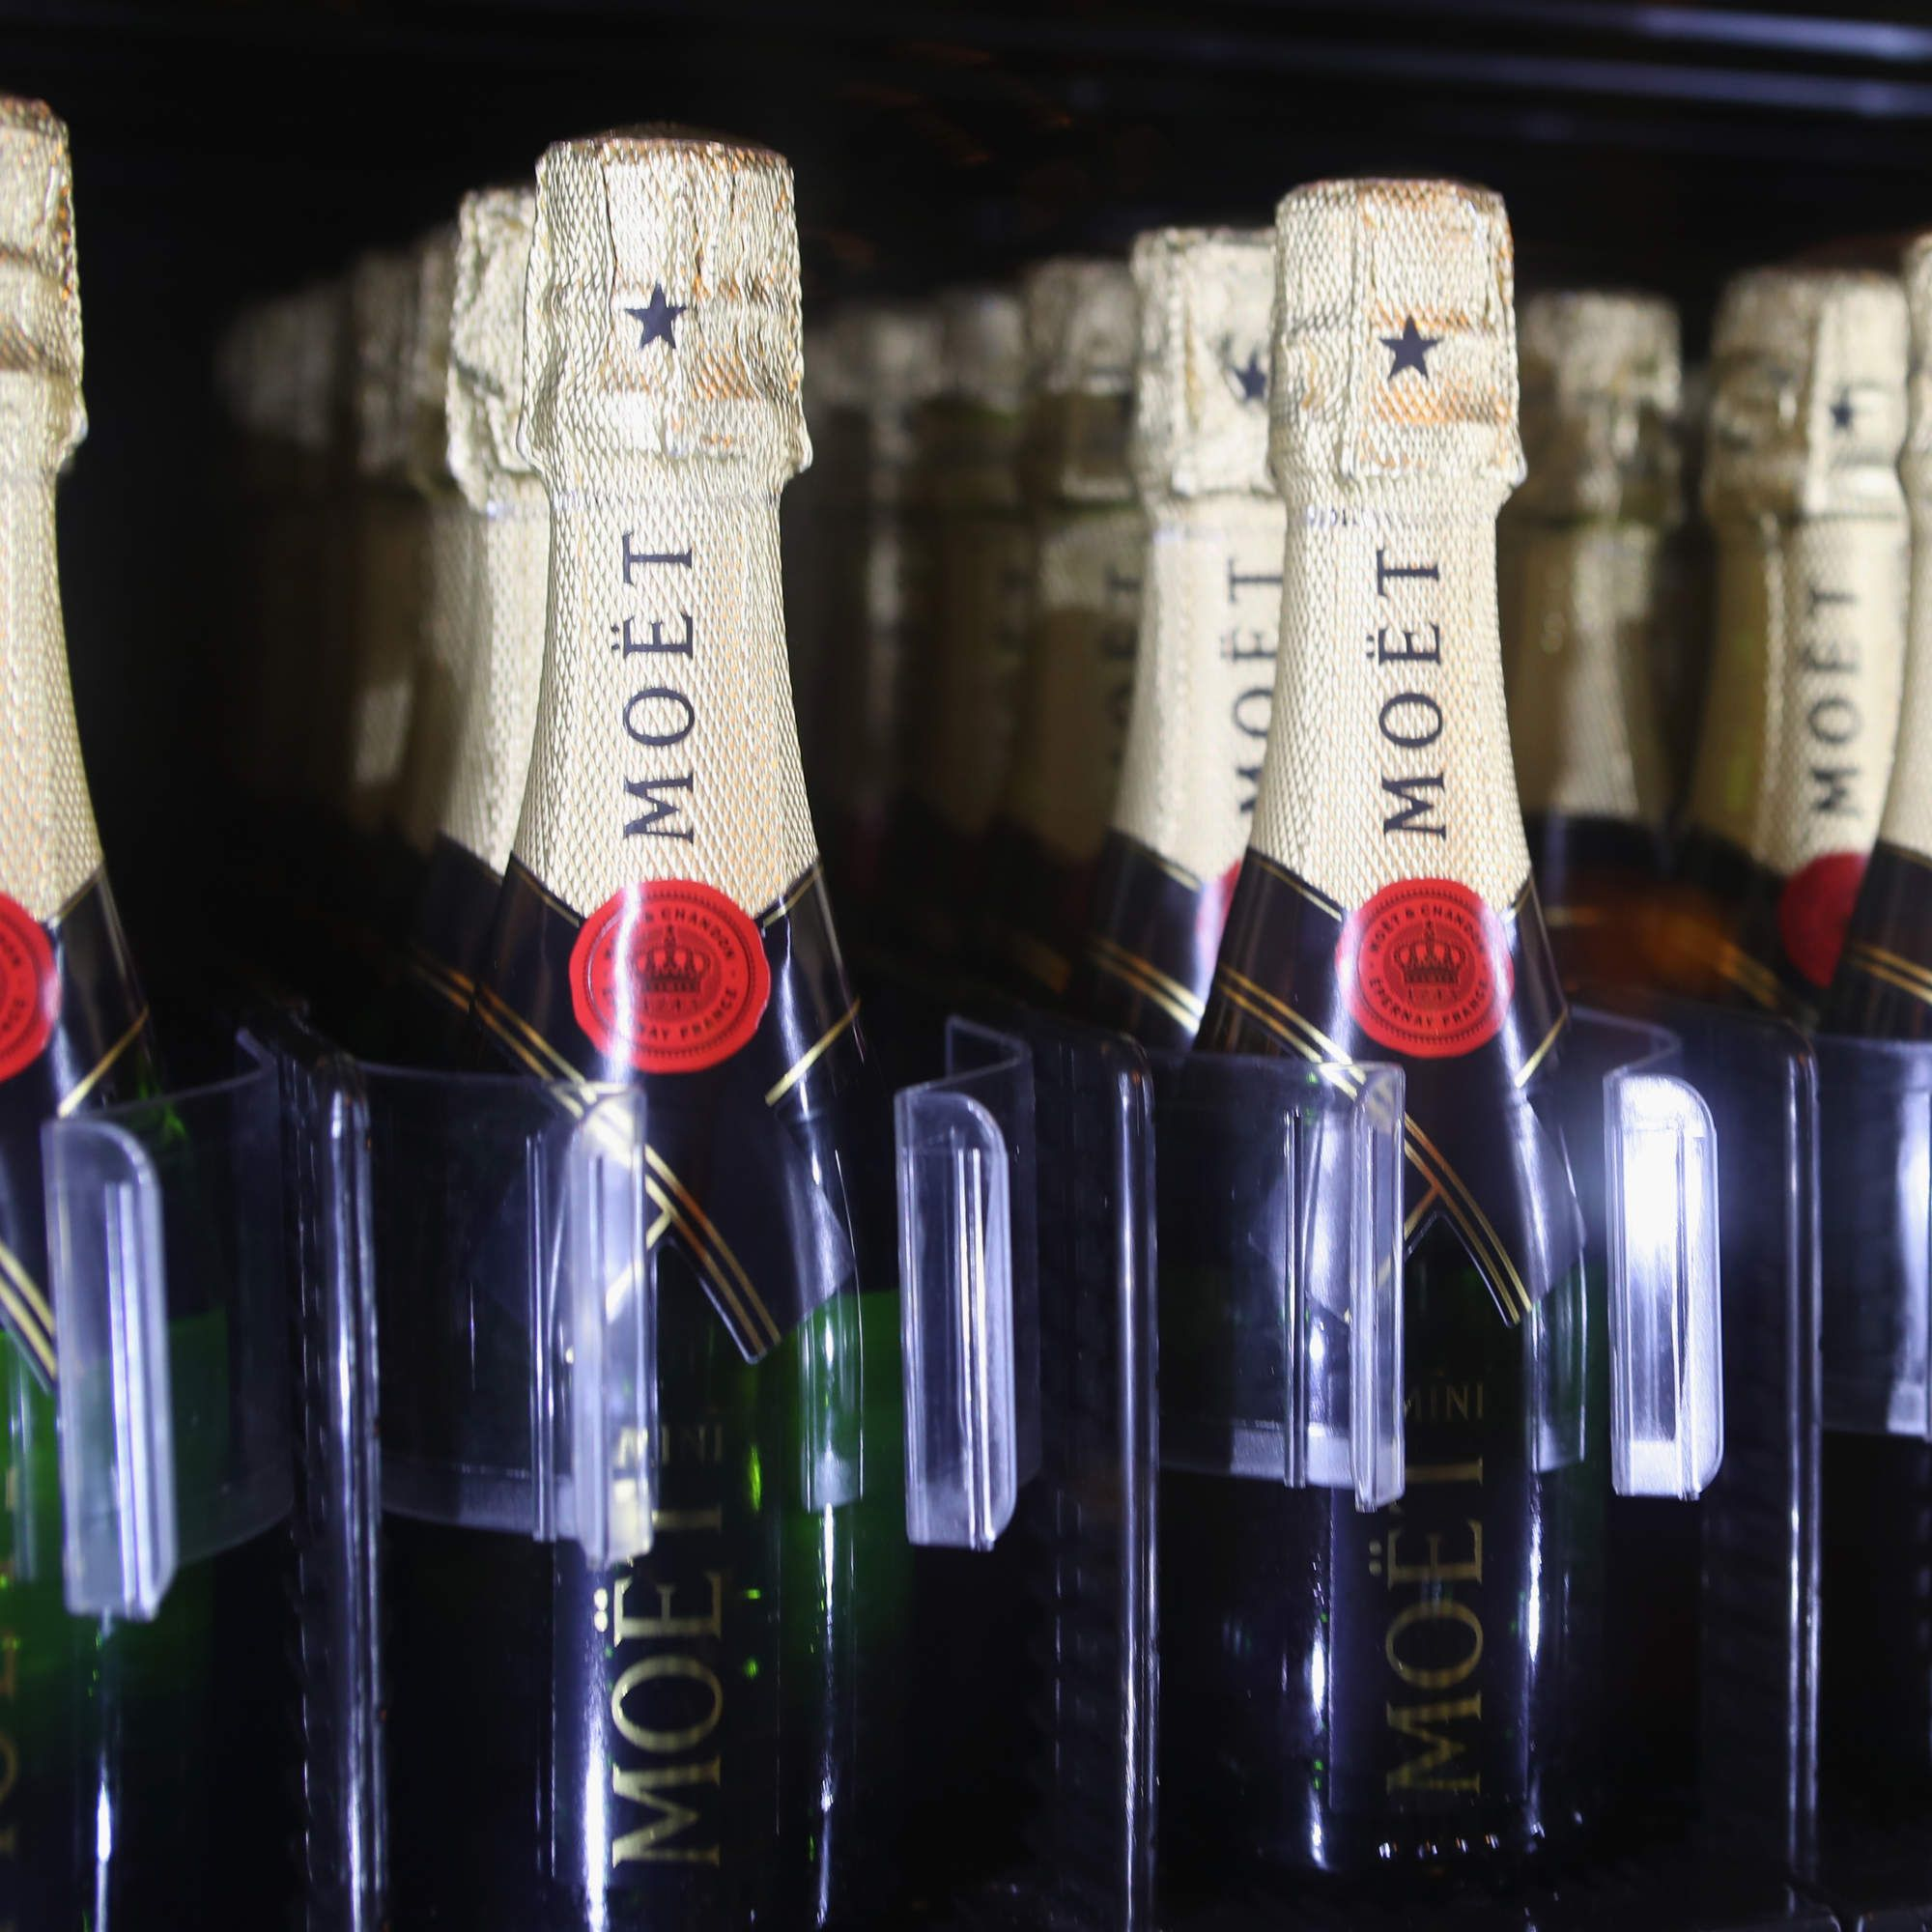 Finally a champagne vending machine has landed in the us